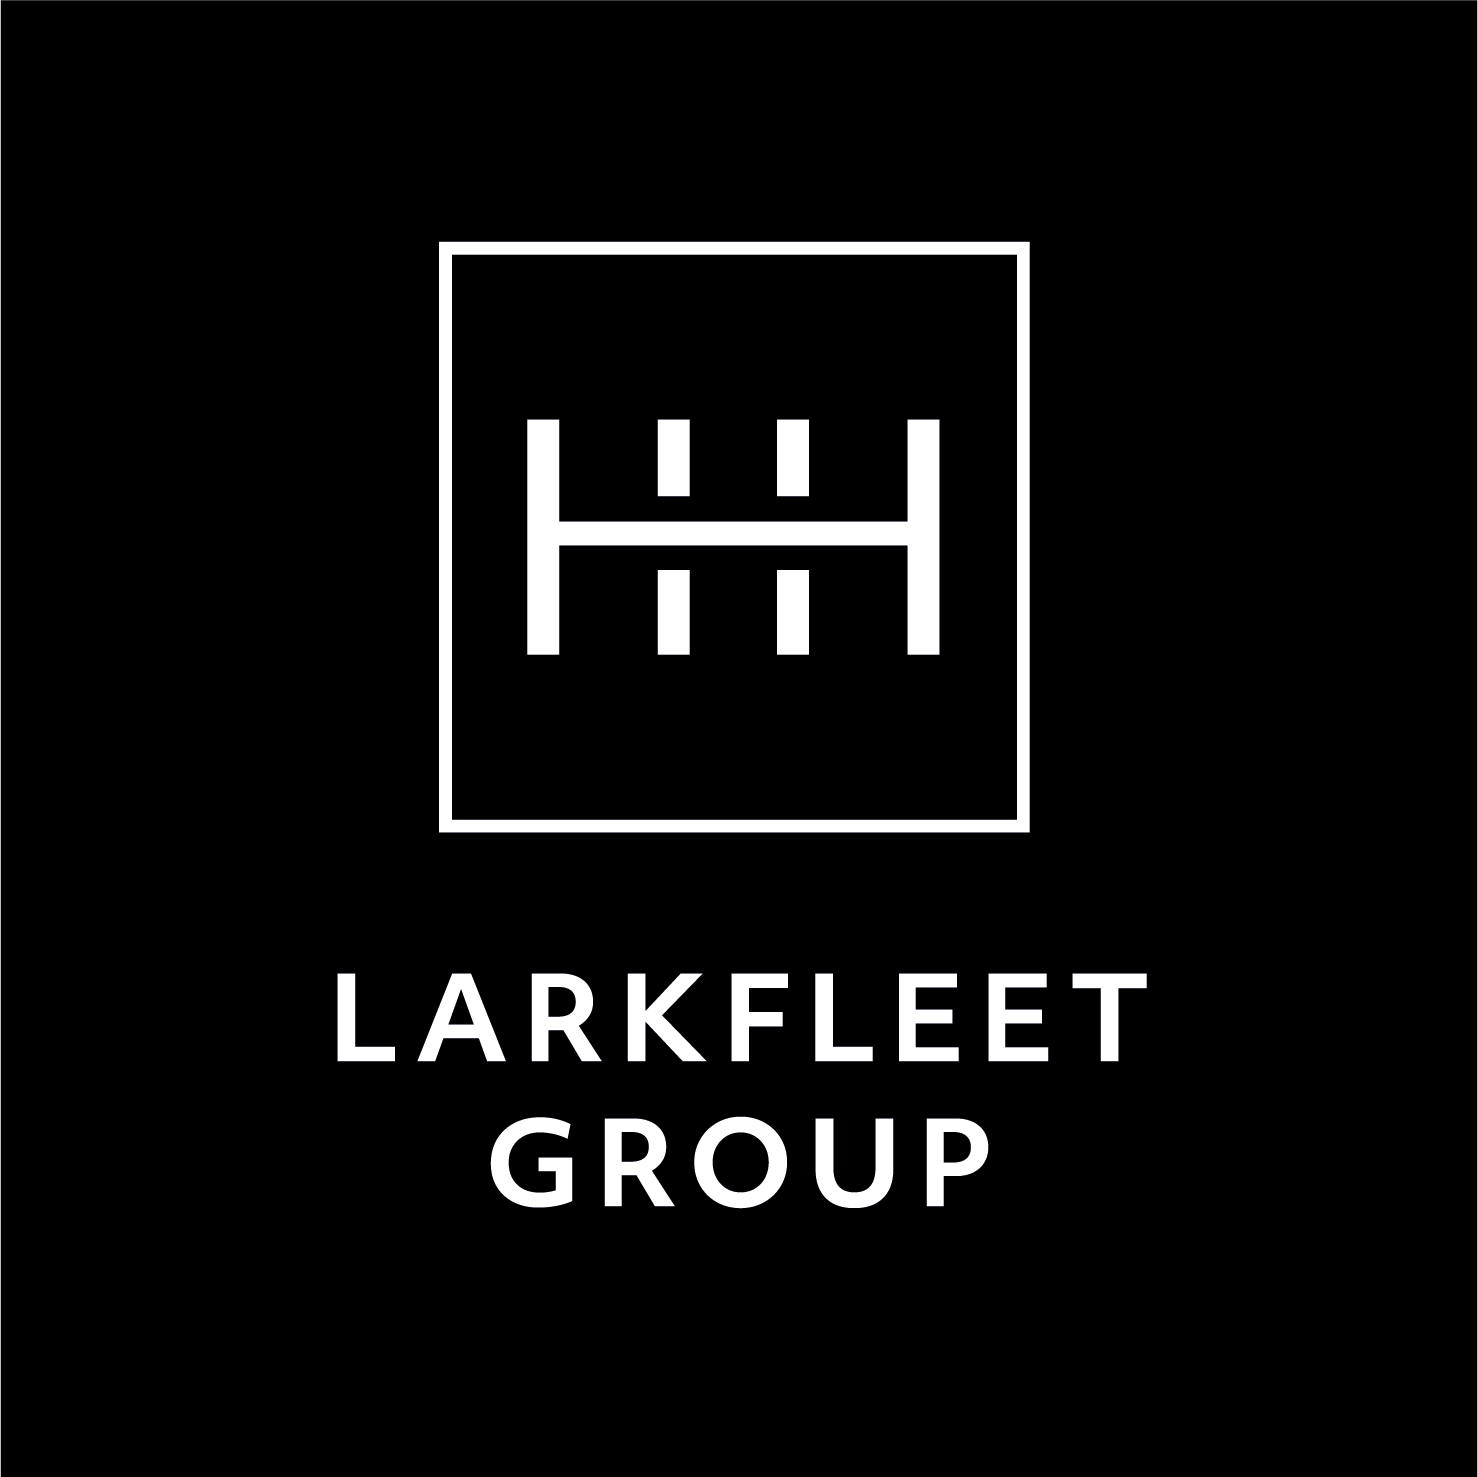 Larkfleet Group sets ambitious target to increase housing sales as new CEO takes charge